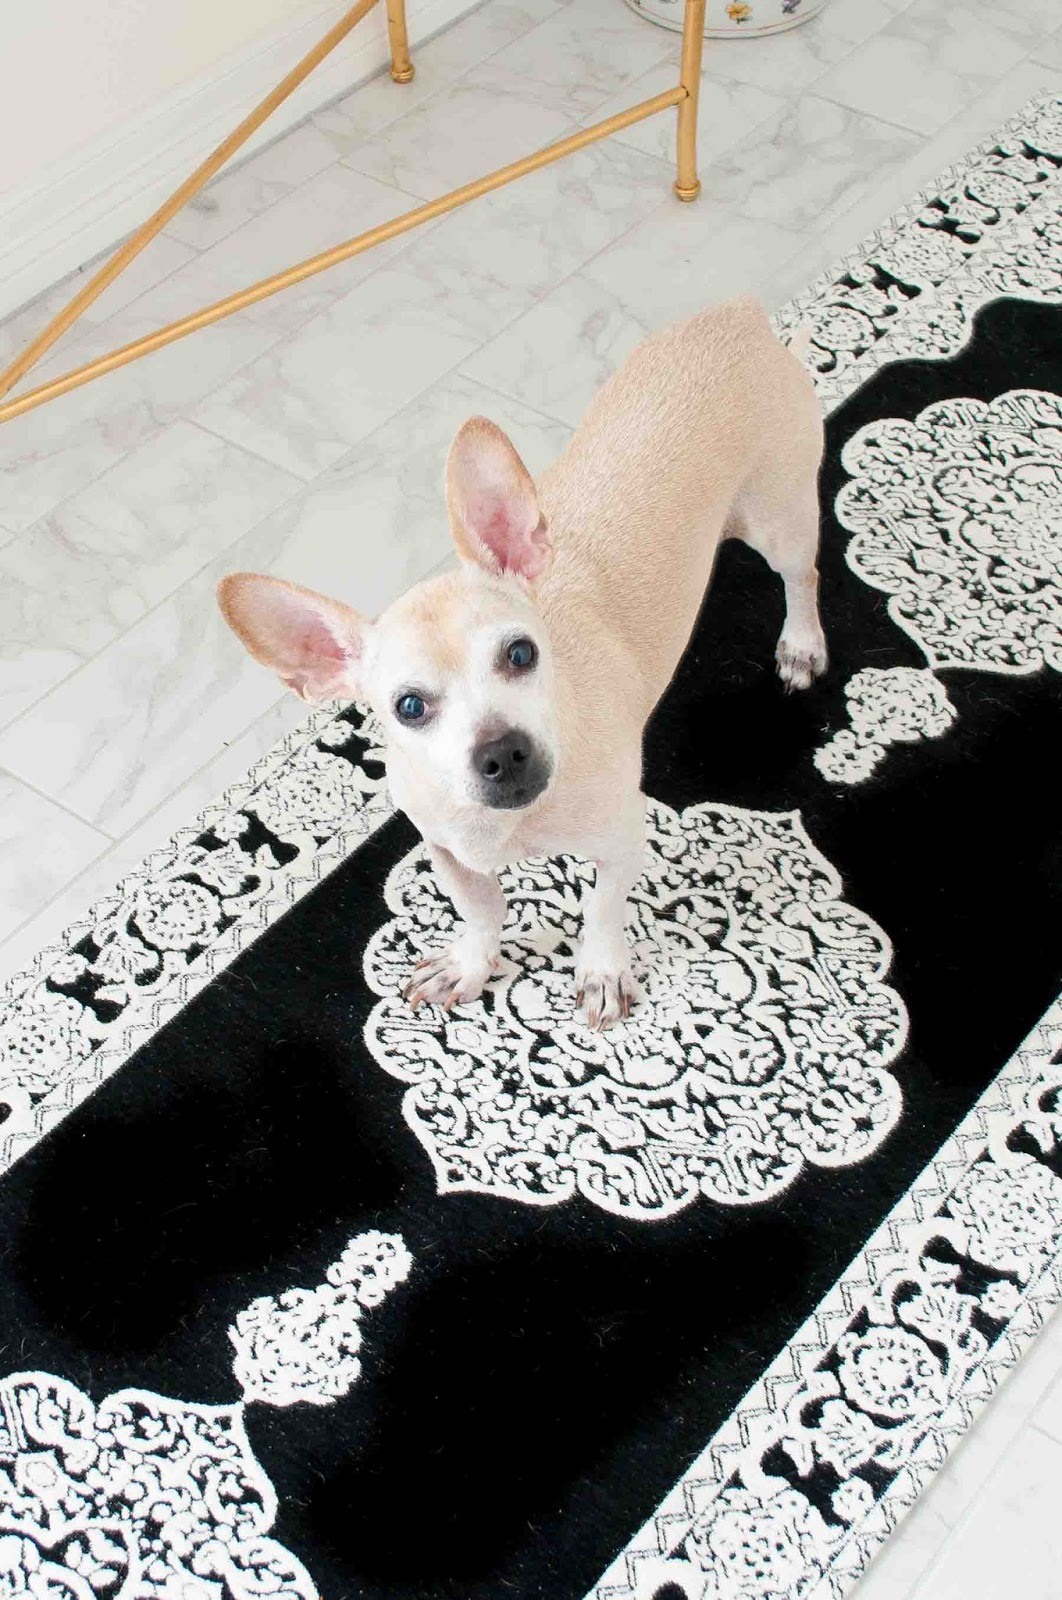 Cute dog on the marbella rug runner by Safavieh.